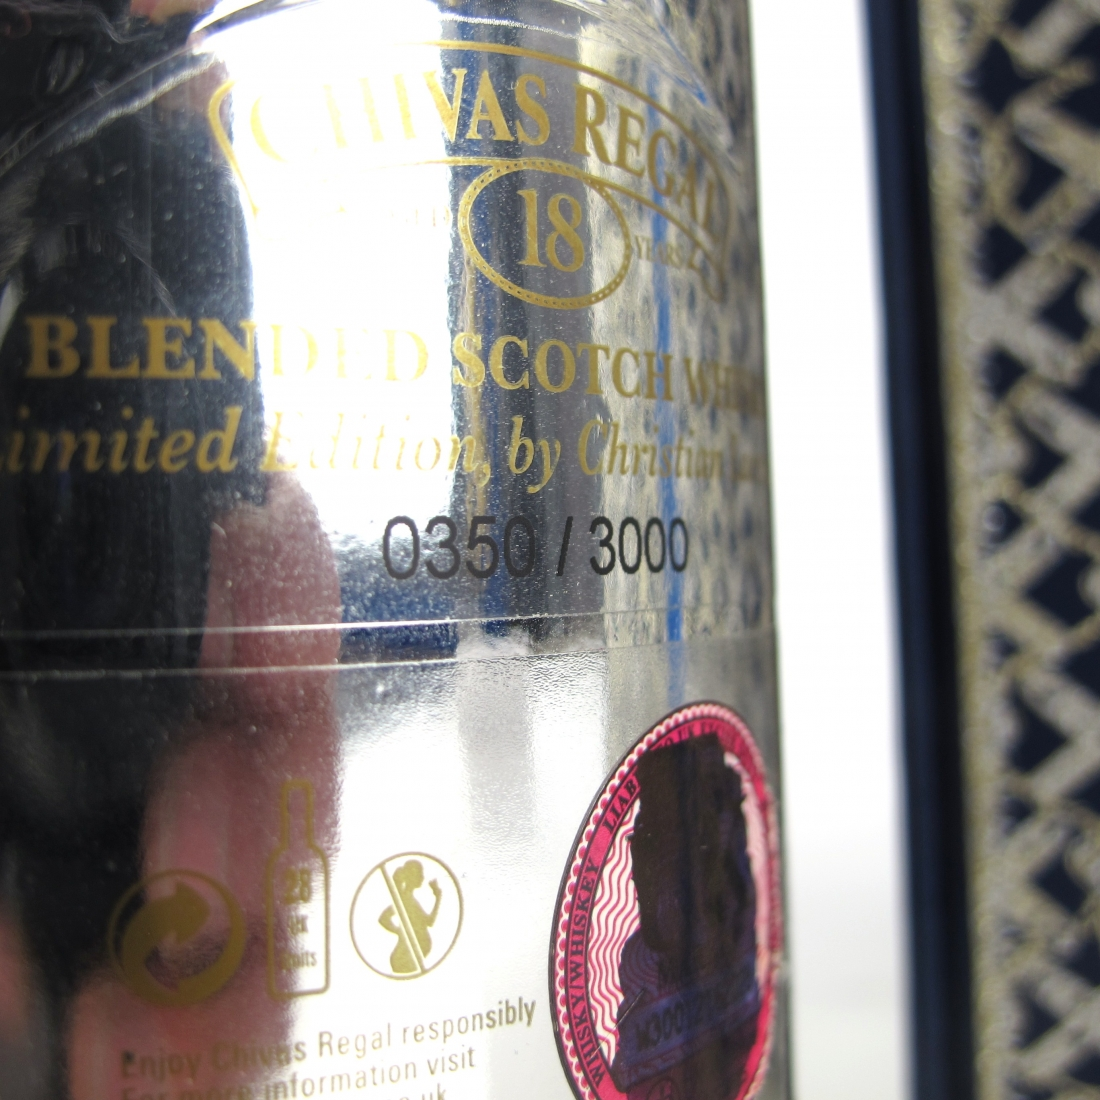 Chivas Regal 18 Year Old Christian Lacroix Edition